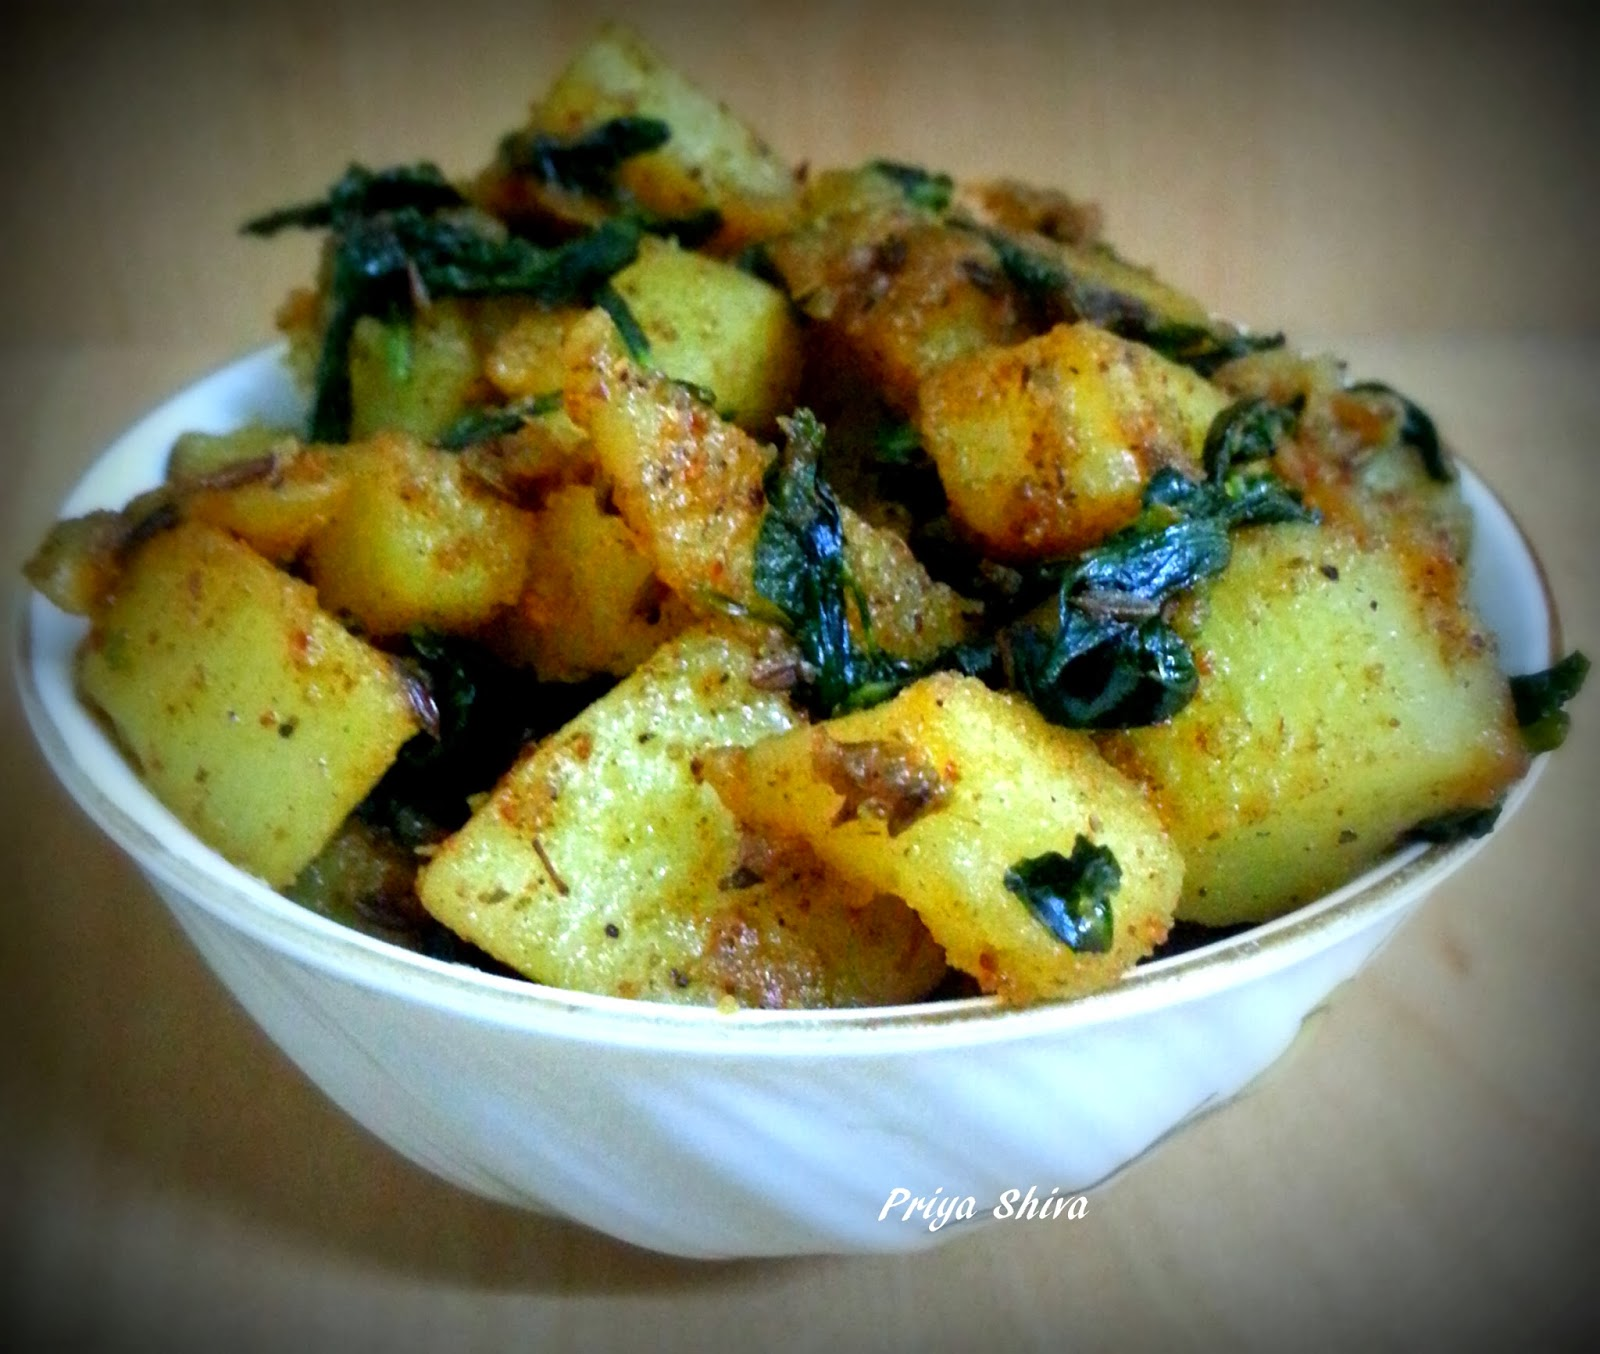 ... of my kitchenette : Aloo Methi Recipe / Potatoes with fenugreek Leaves